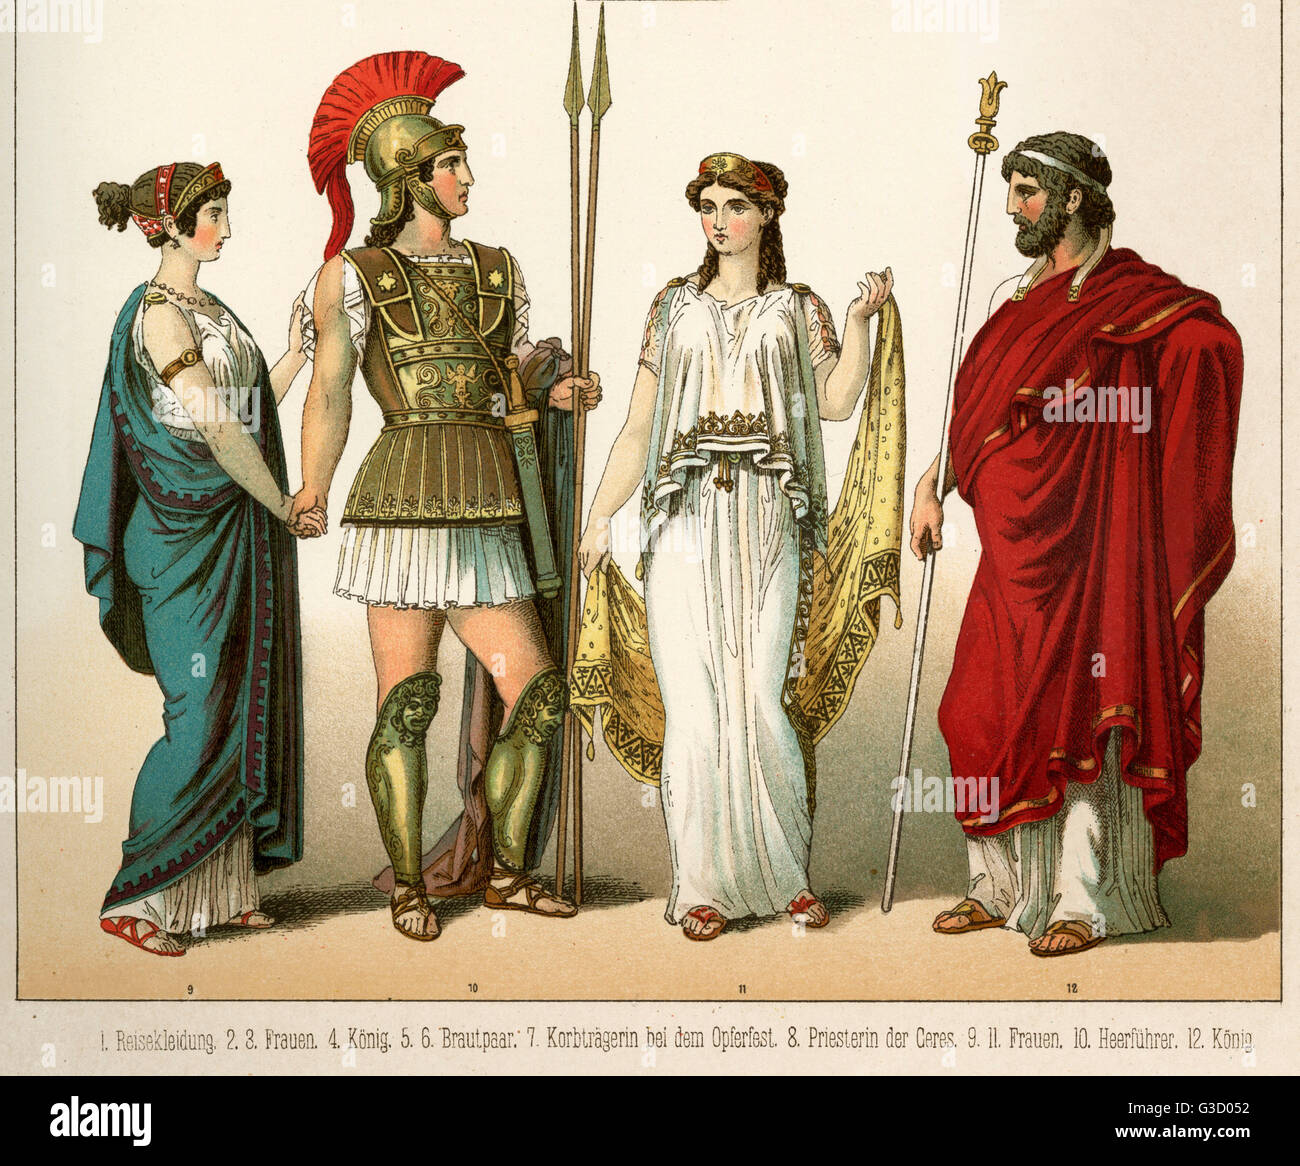 Ancient Greece Costume, Wearing Chiton, Warrior With Armour And Stock Photo, Royalty Free Image